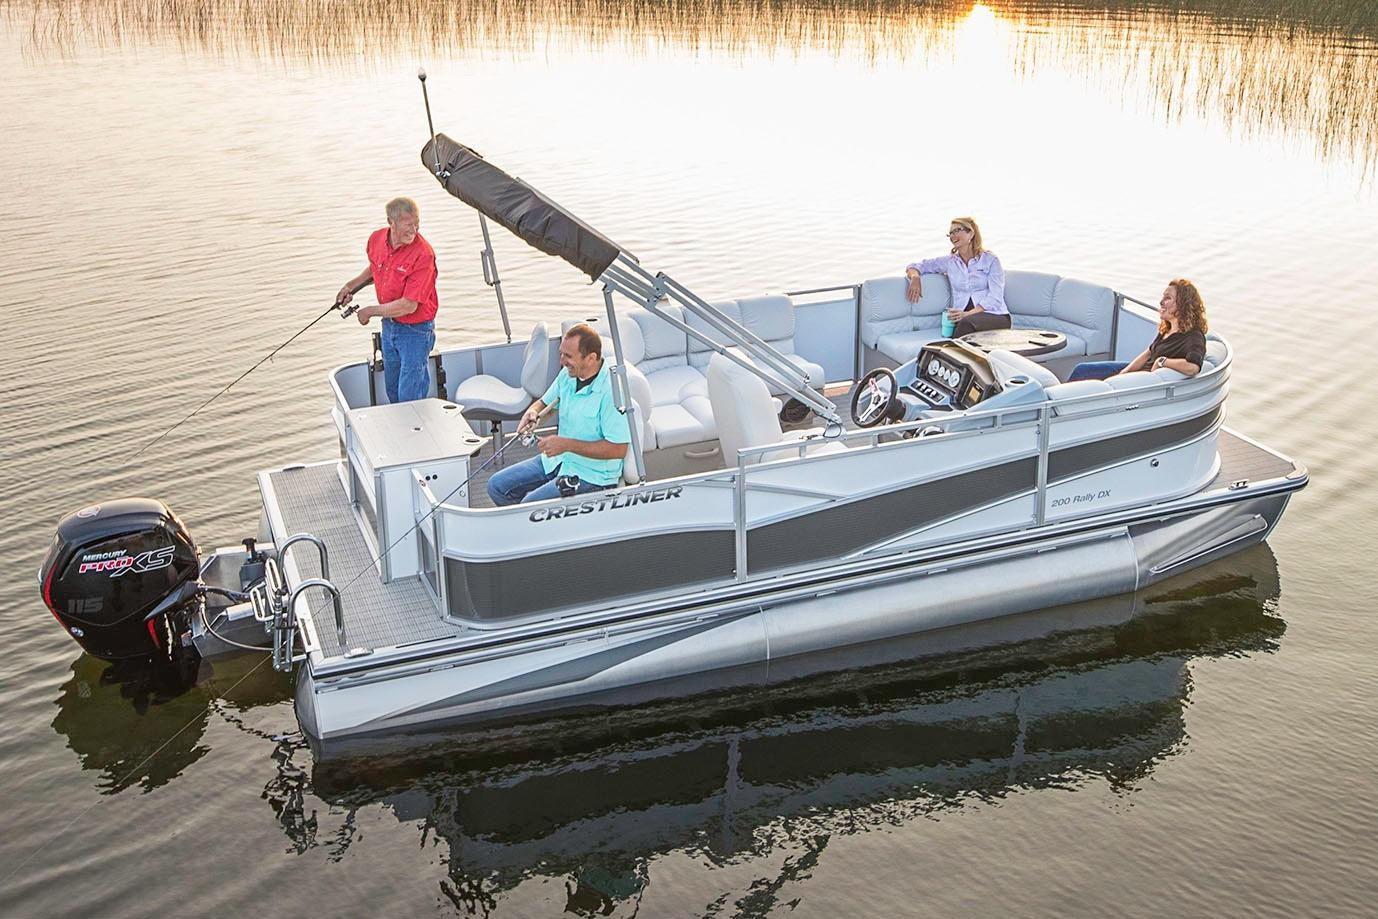 2019 Crestliner 200 Rally DX FC in Kaukauna, Wisconsin - Photo 2